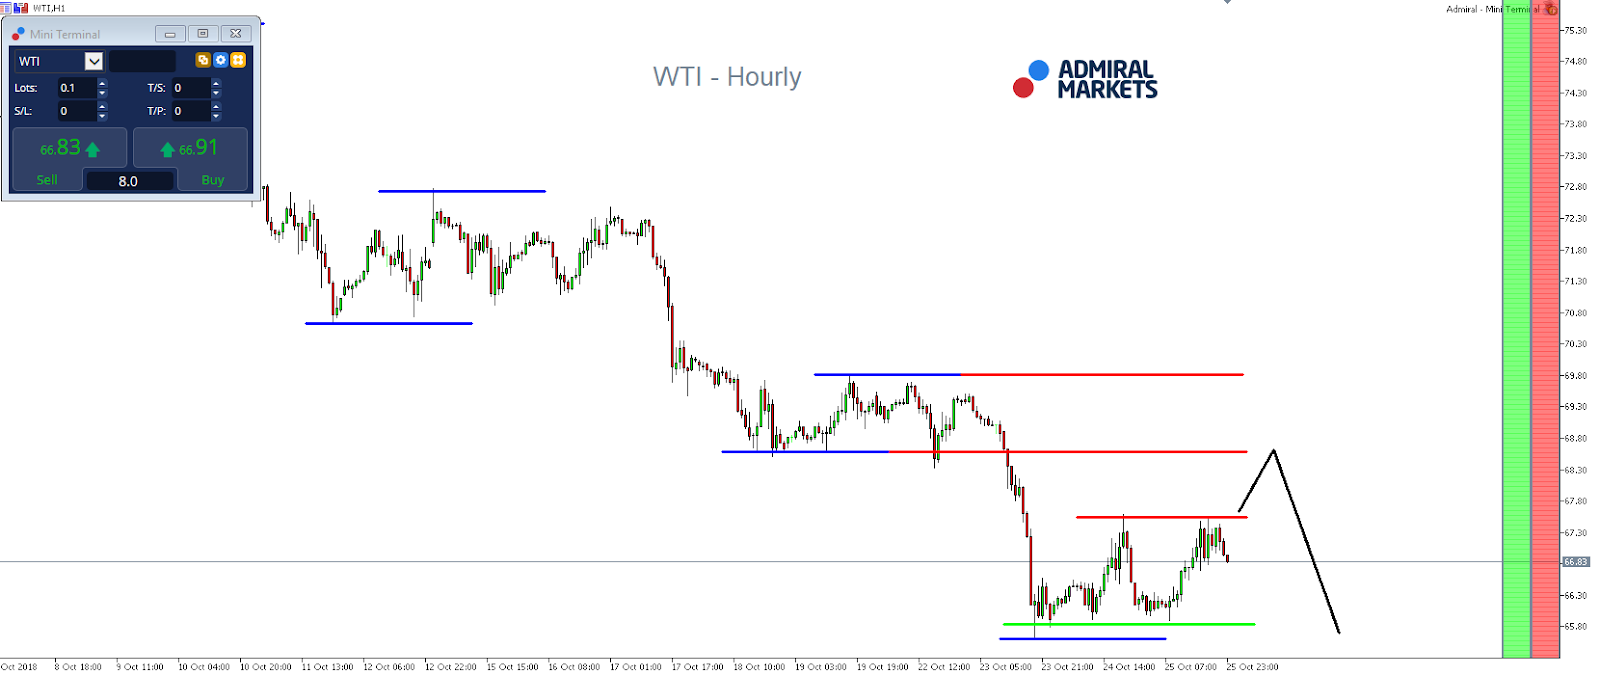 WTI OIL CFD Hourly Chart